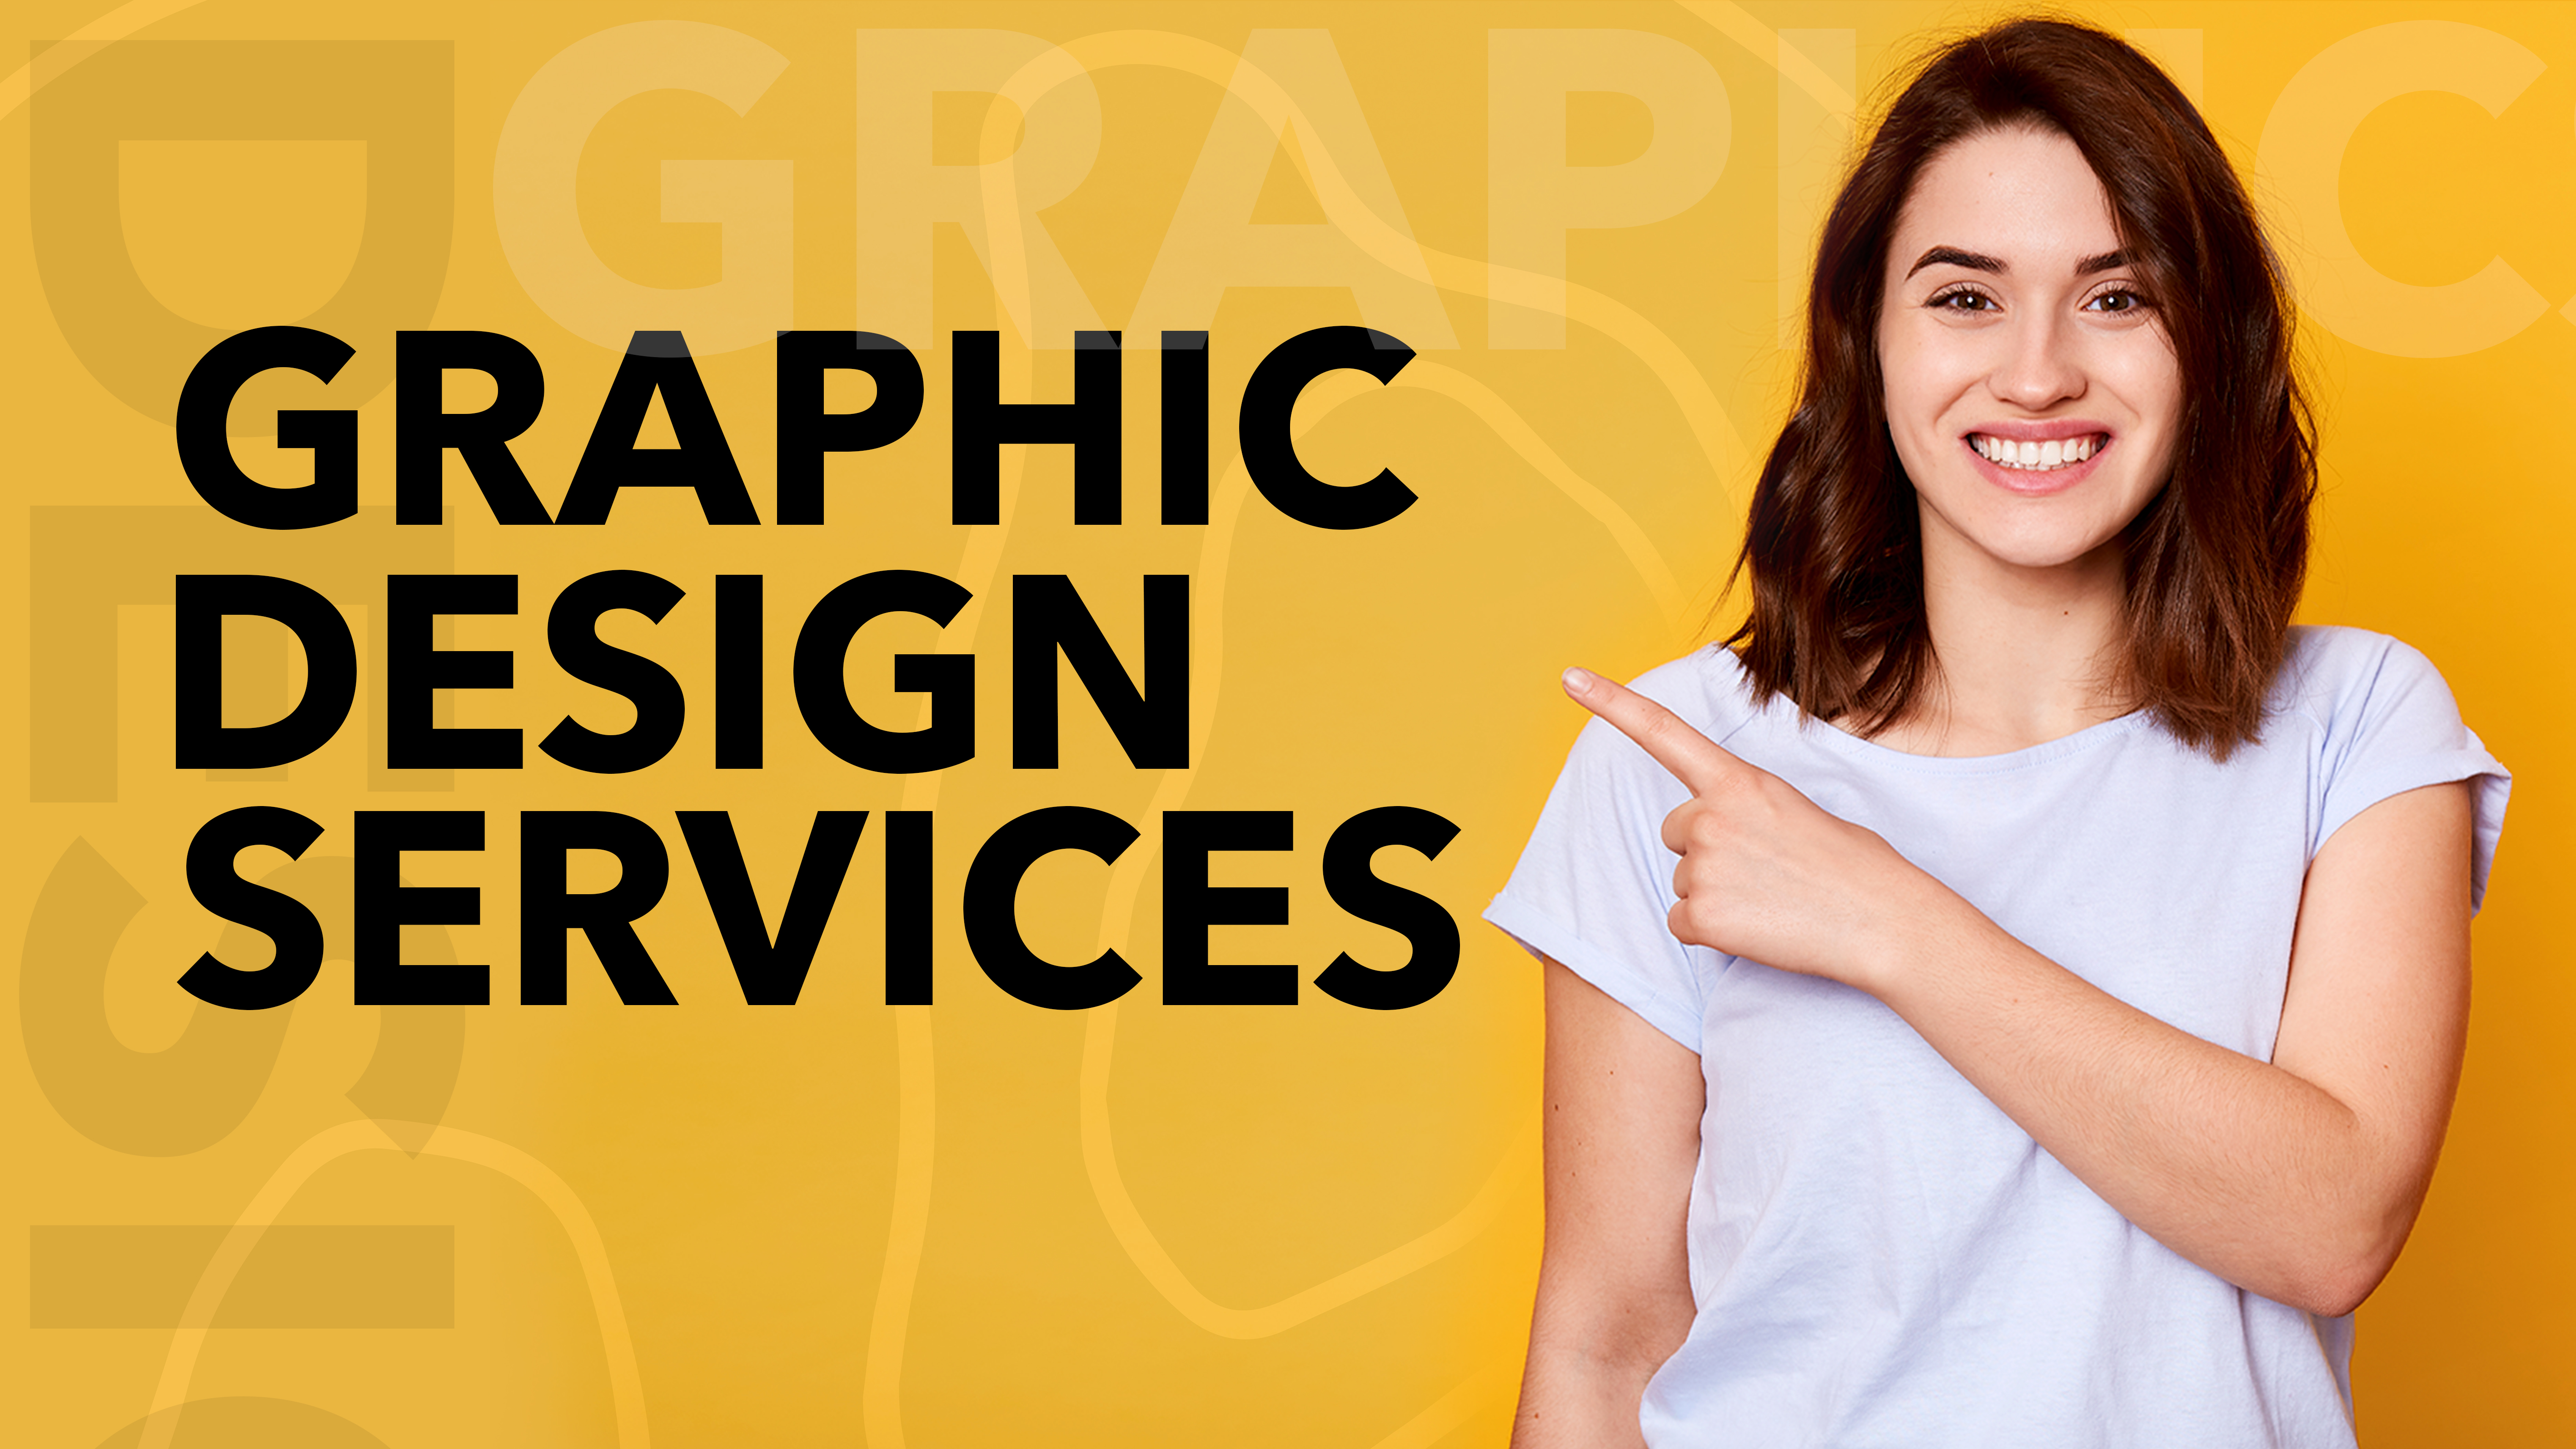 I will do any kind of graphic design services